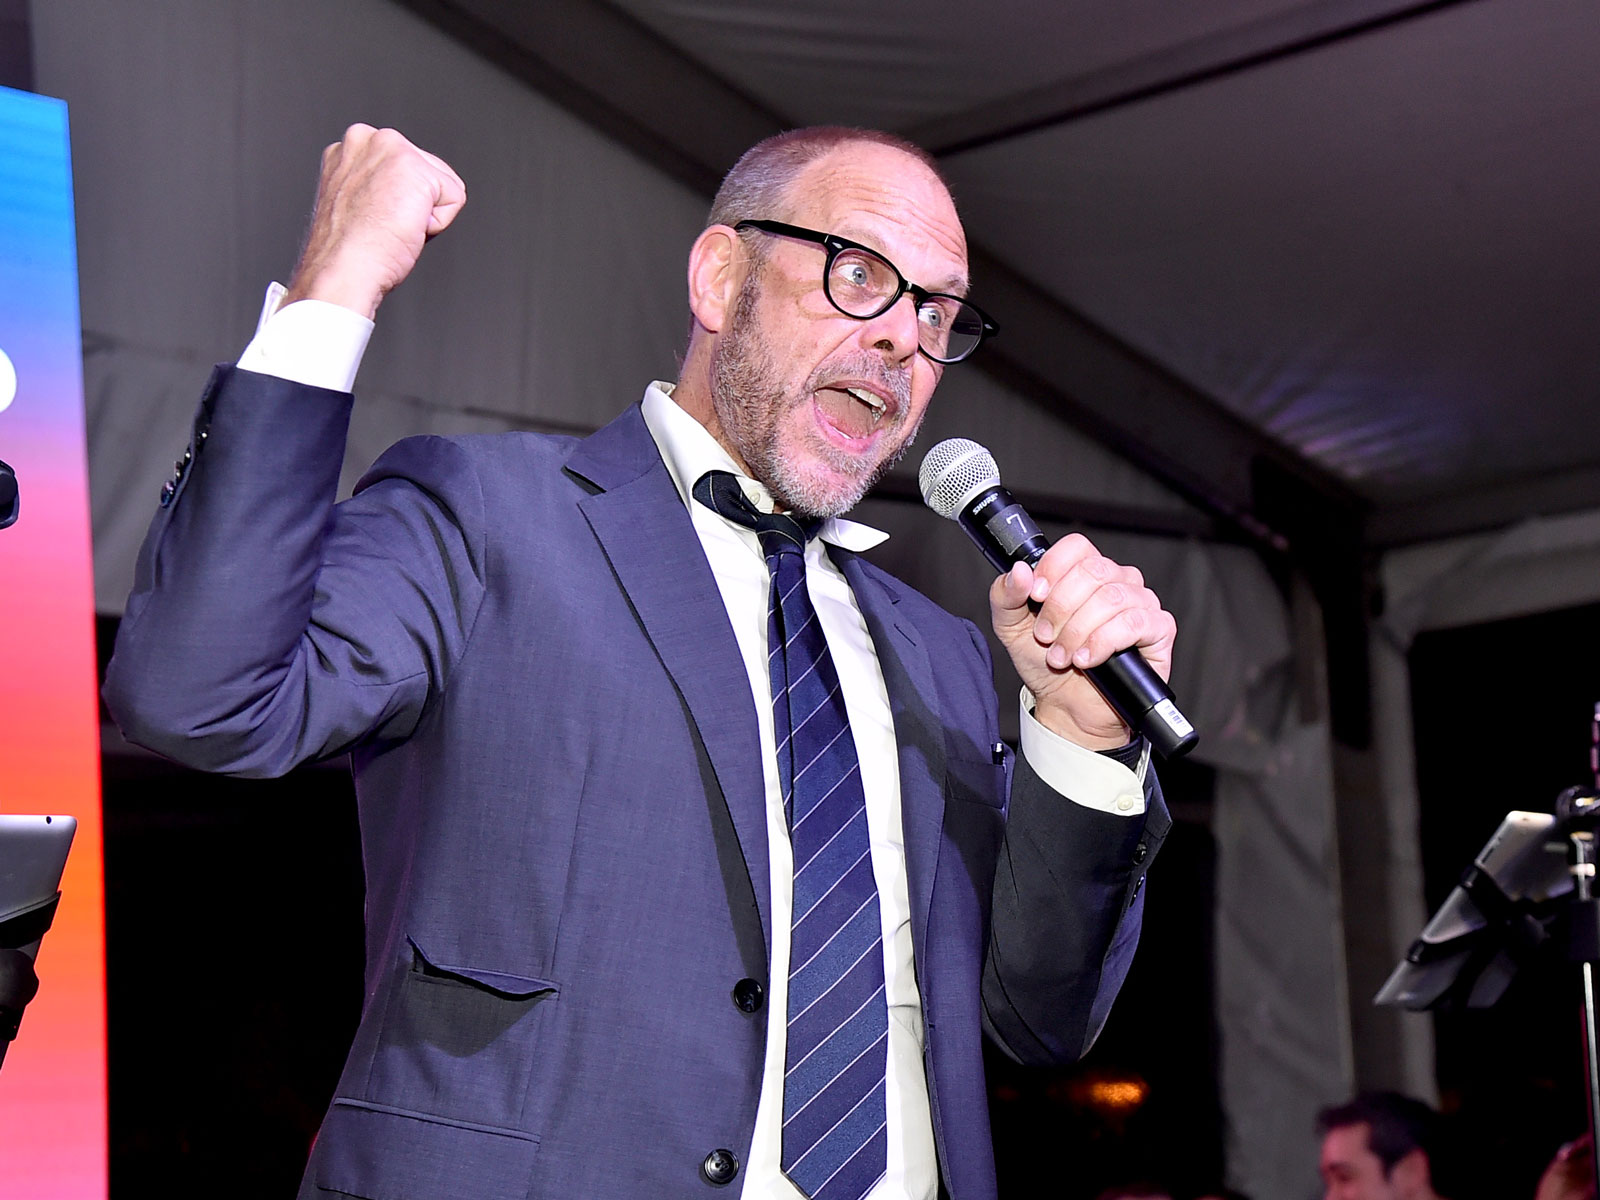 Alton Brown Dropped an Album With a Rap Song About Being a TV Chef